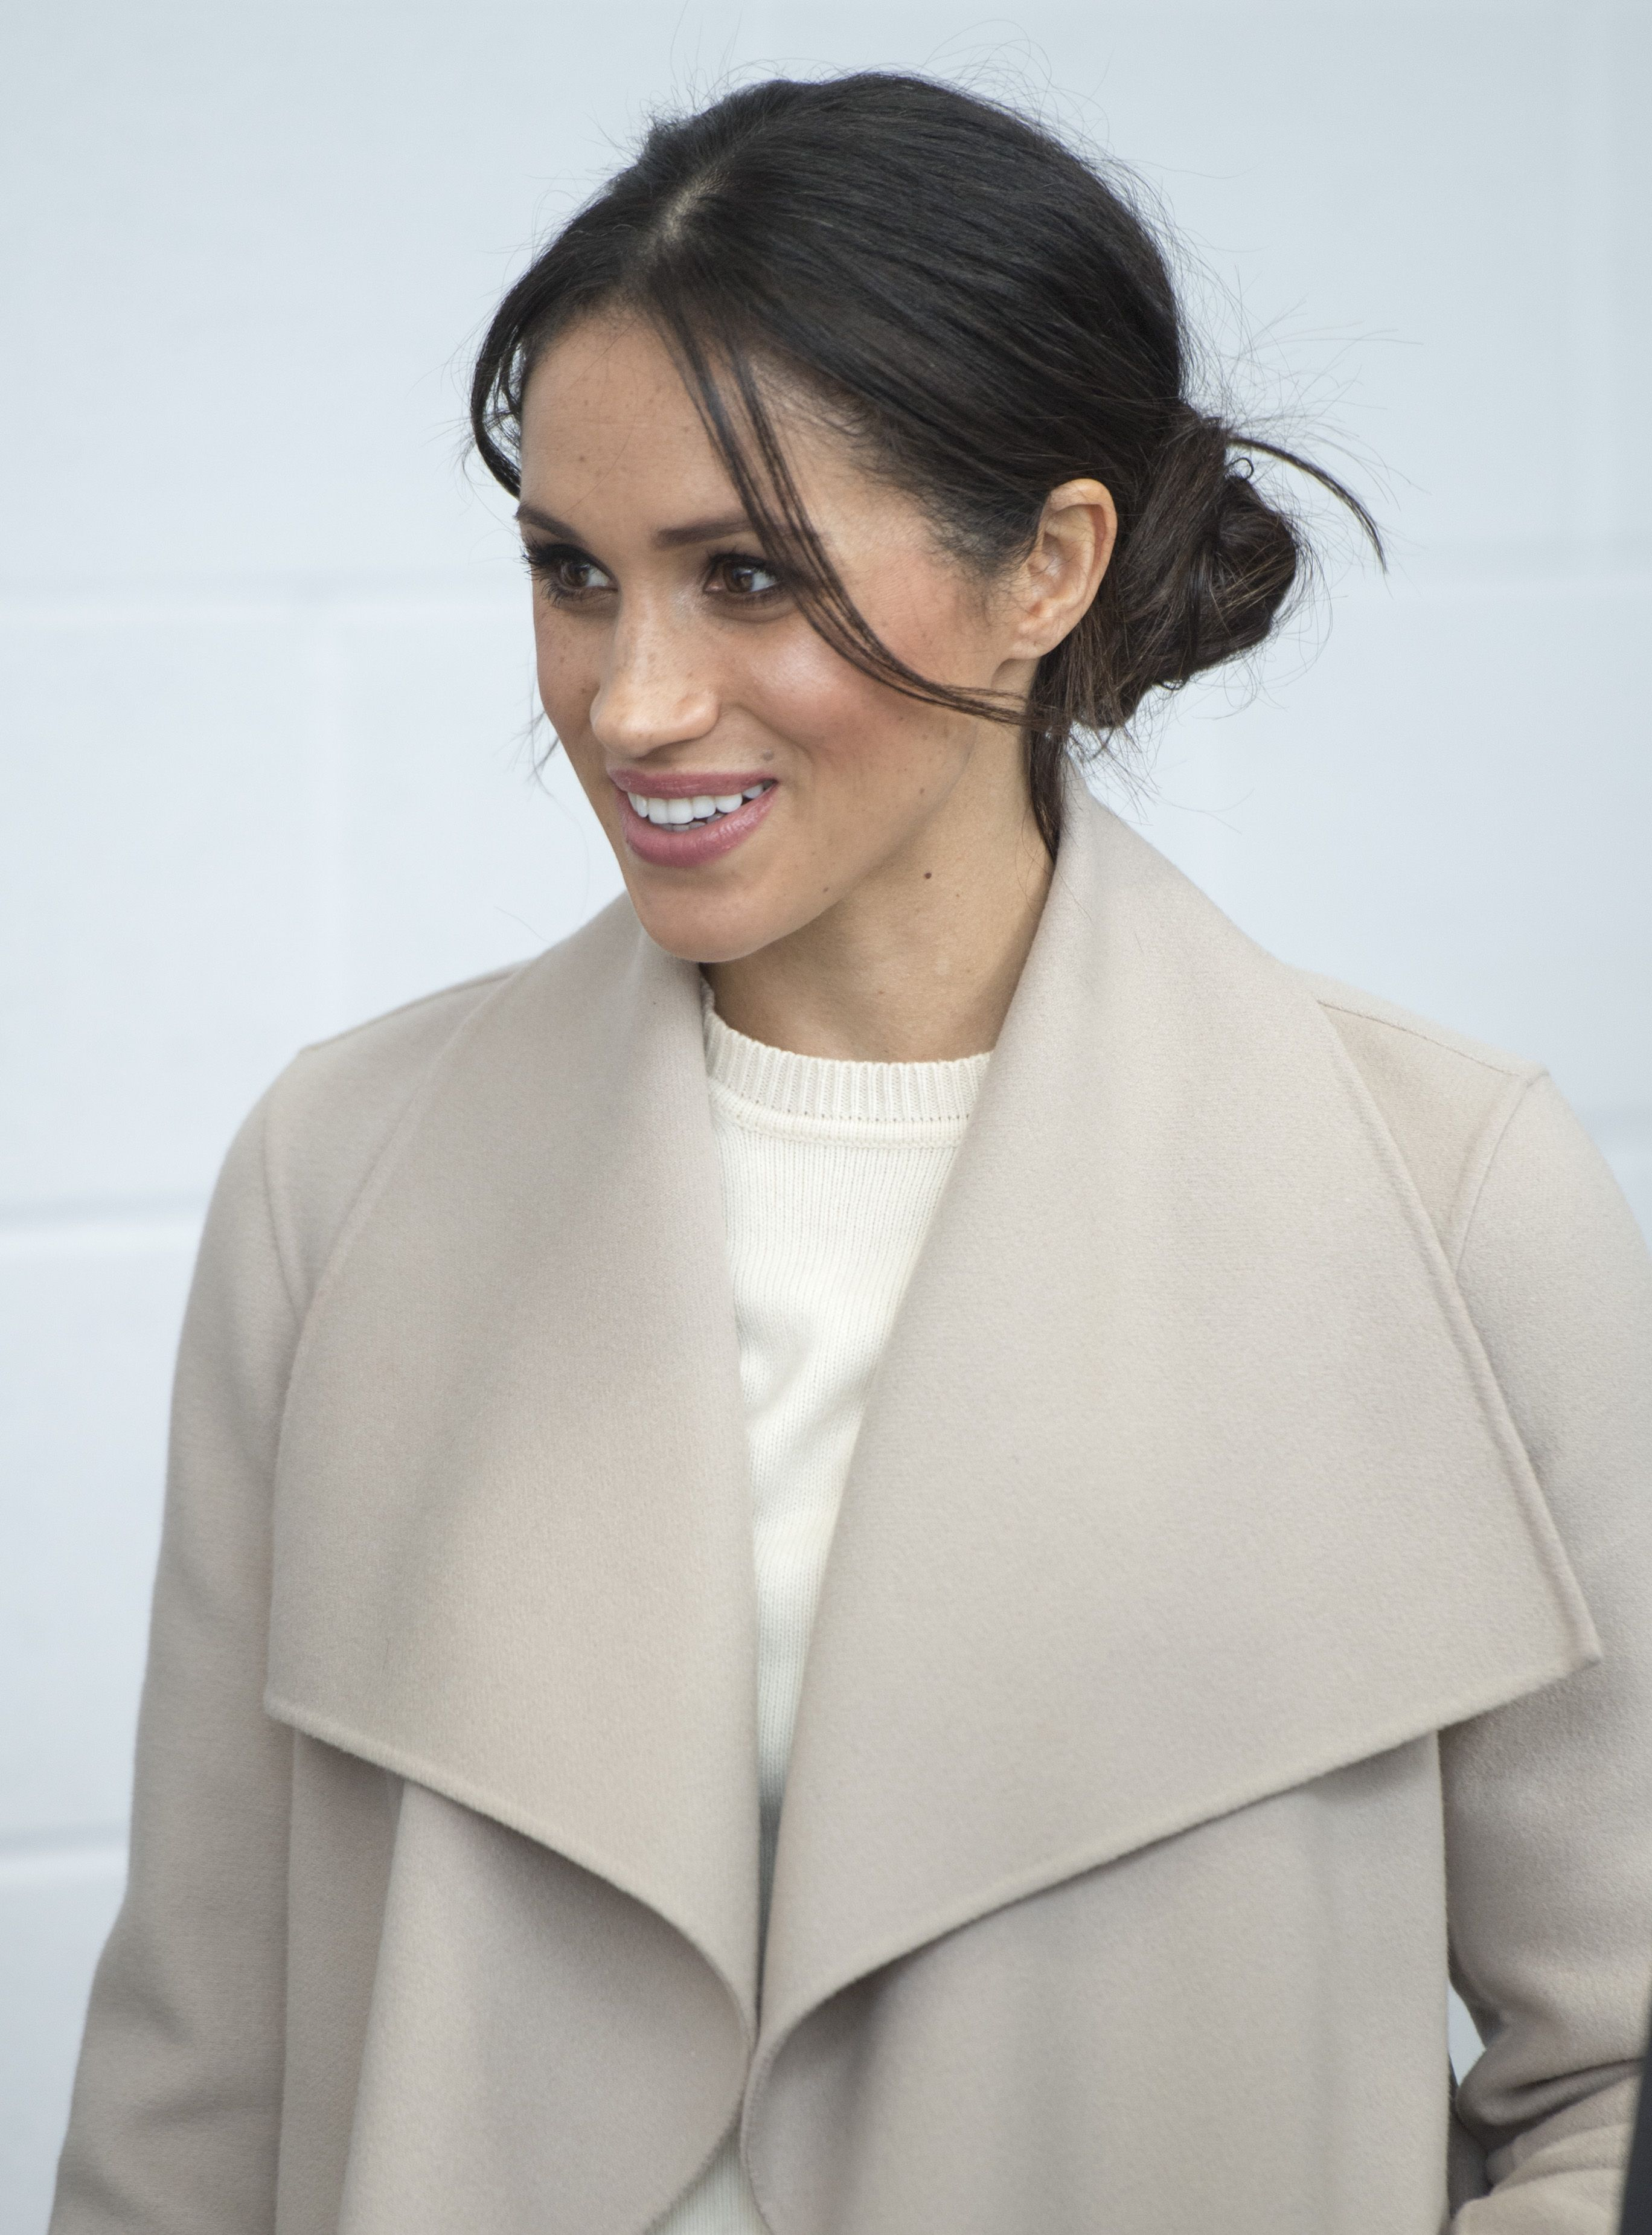 Meghan Markle\'s Hairstyles Through The Years - Meghan Markle\'s Hair ...